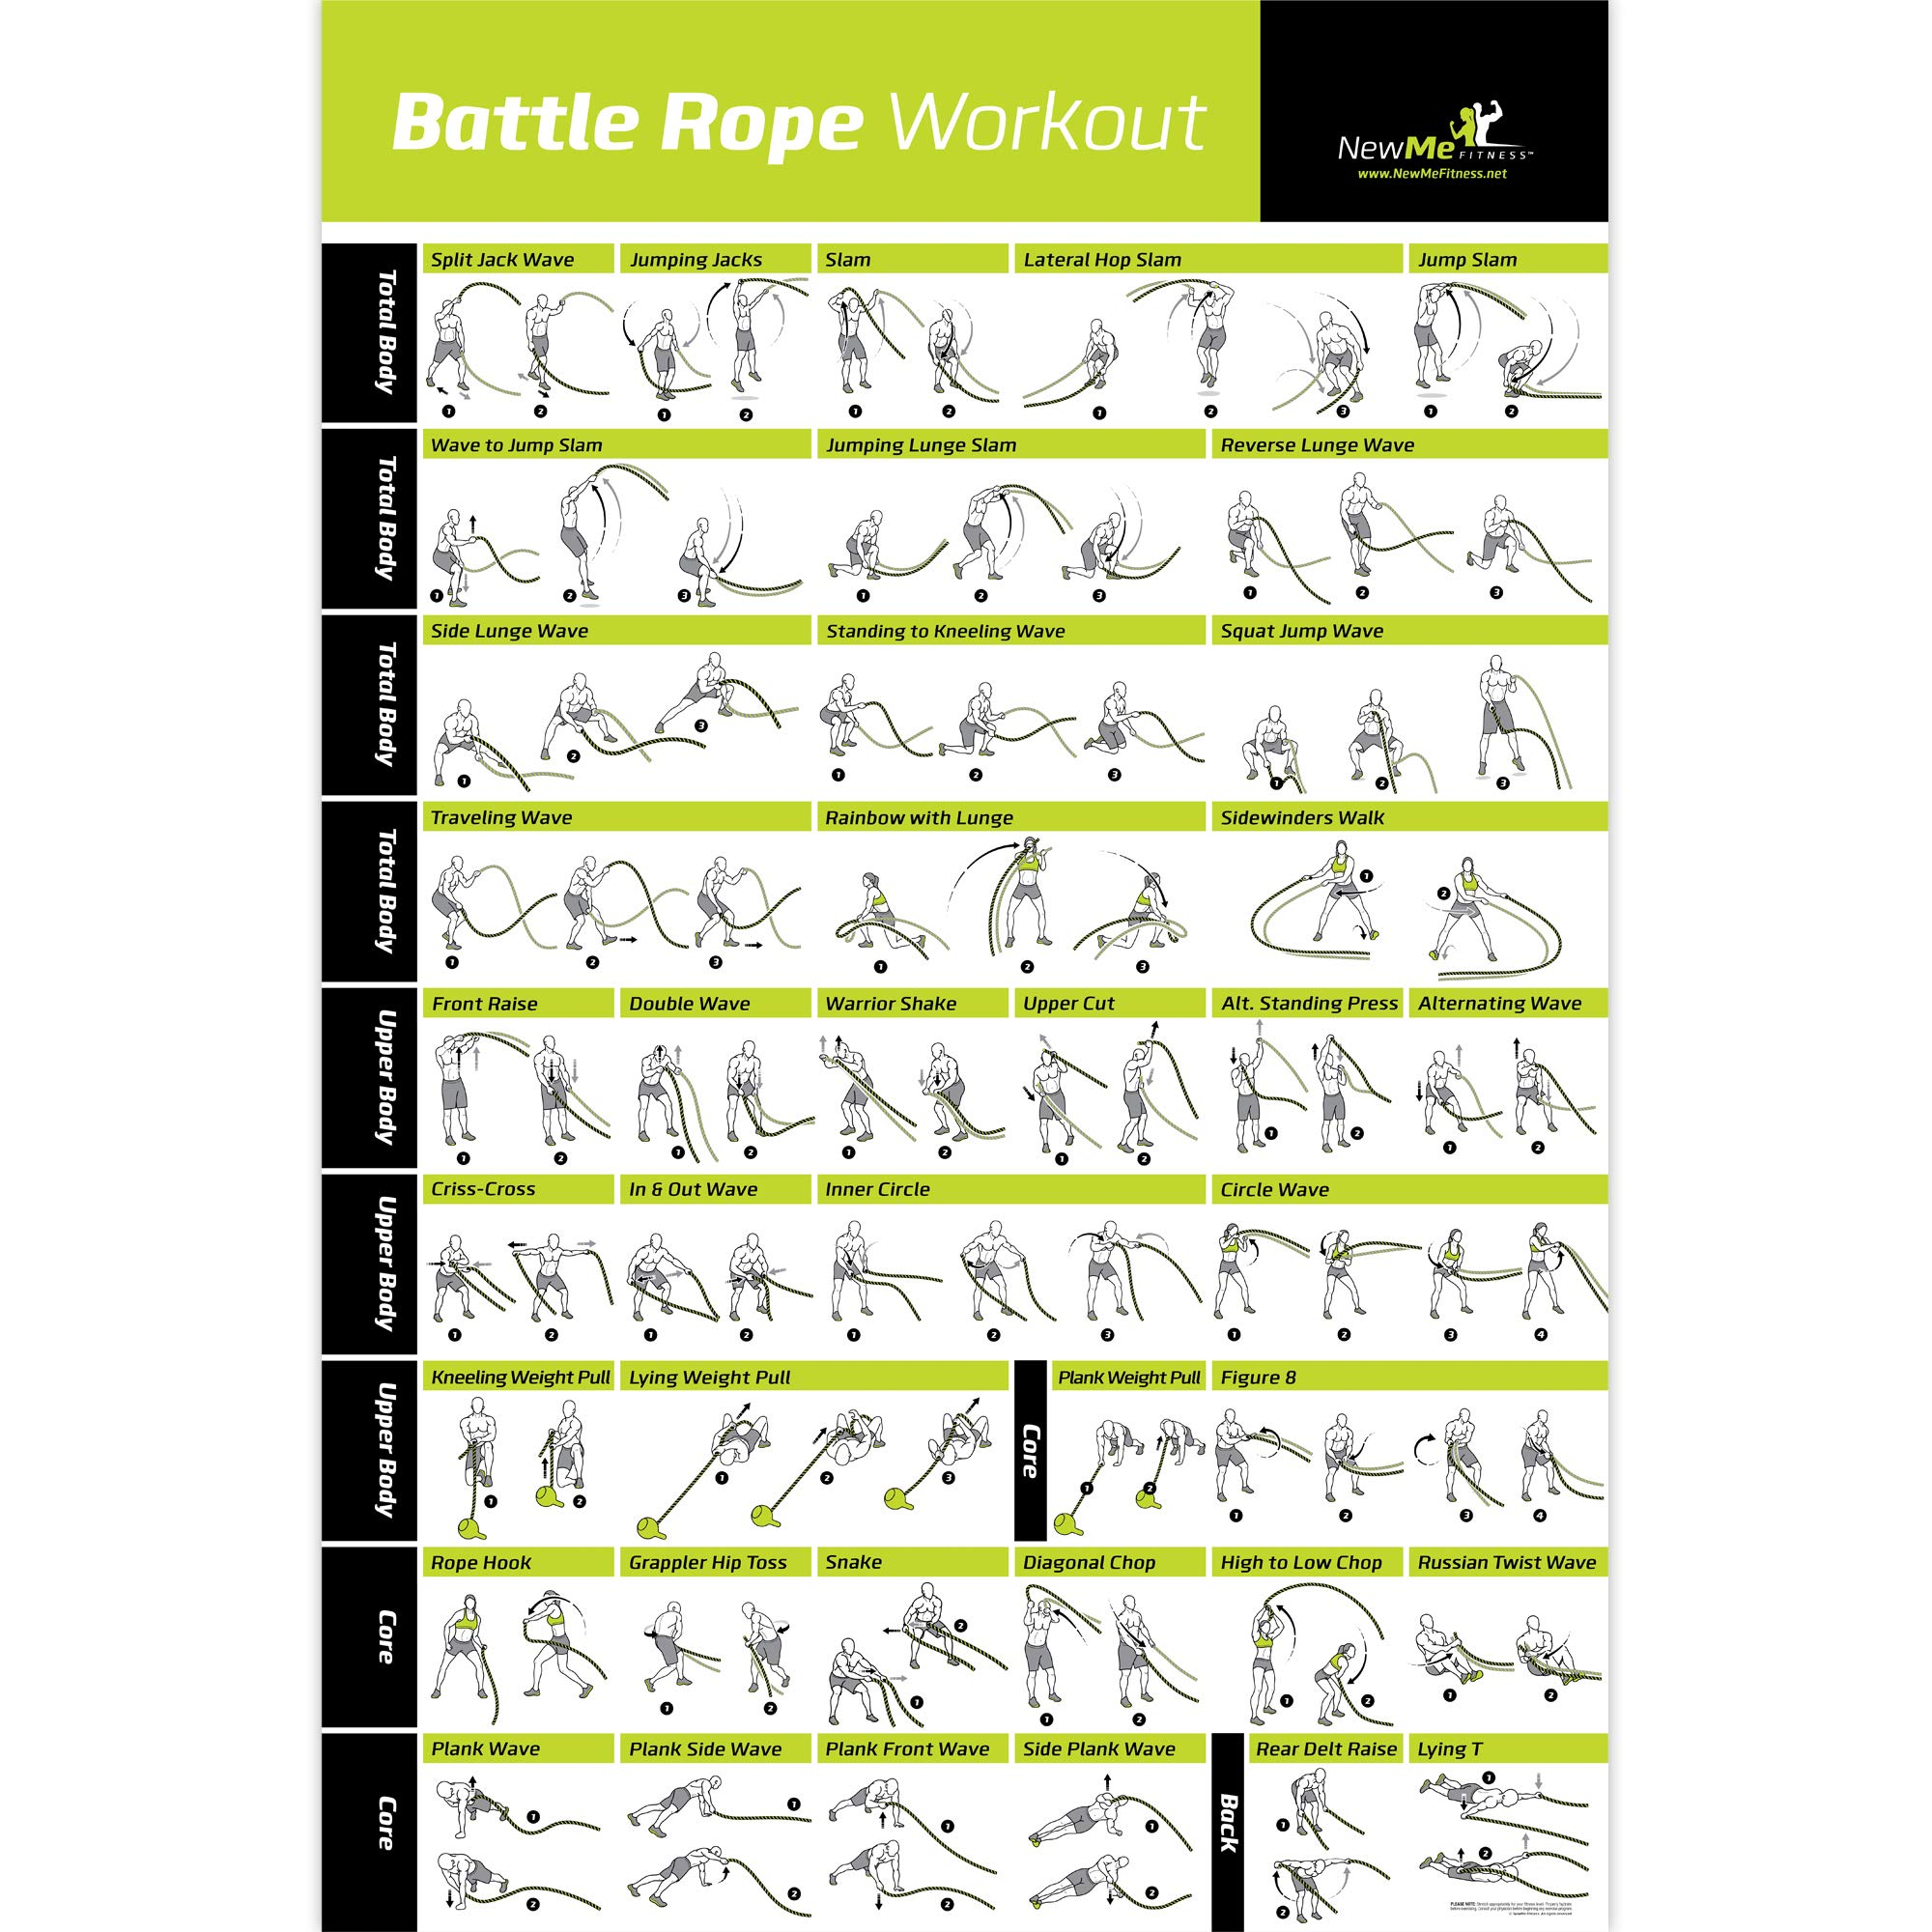 NewMe Fitness Laminated Battle Rope Exercise Poster for Home or Gym, 20''x30'' :: Illustrated Guide with 40 Workout Exercises for Core, Upper Body, Total Body :: for Crossfit, Cardio Training, More